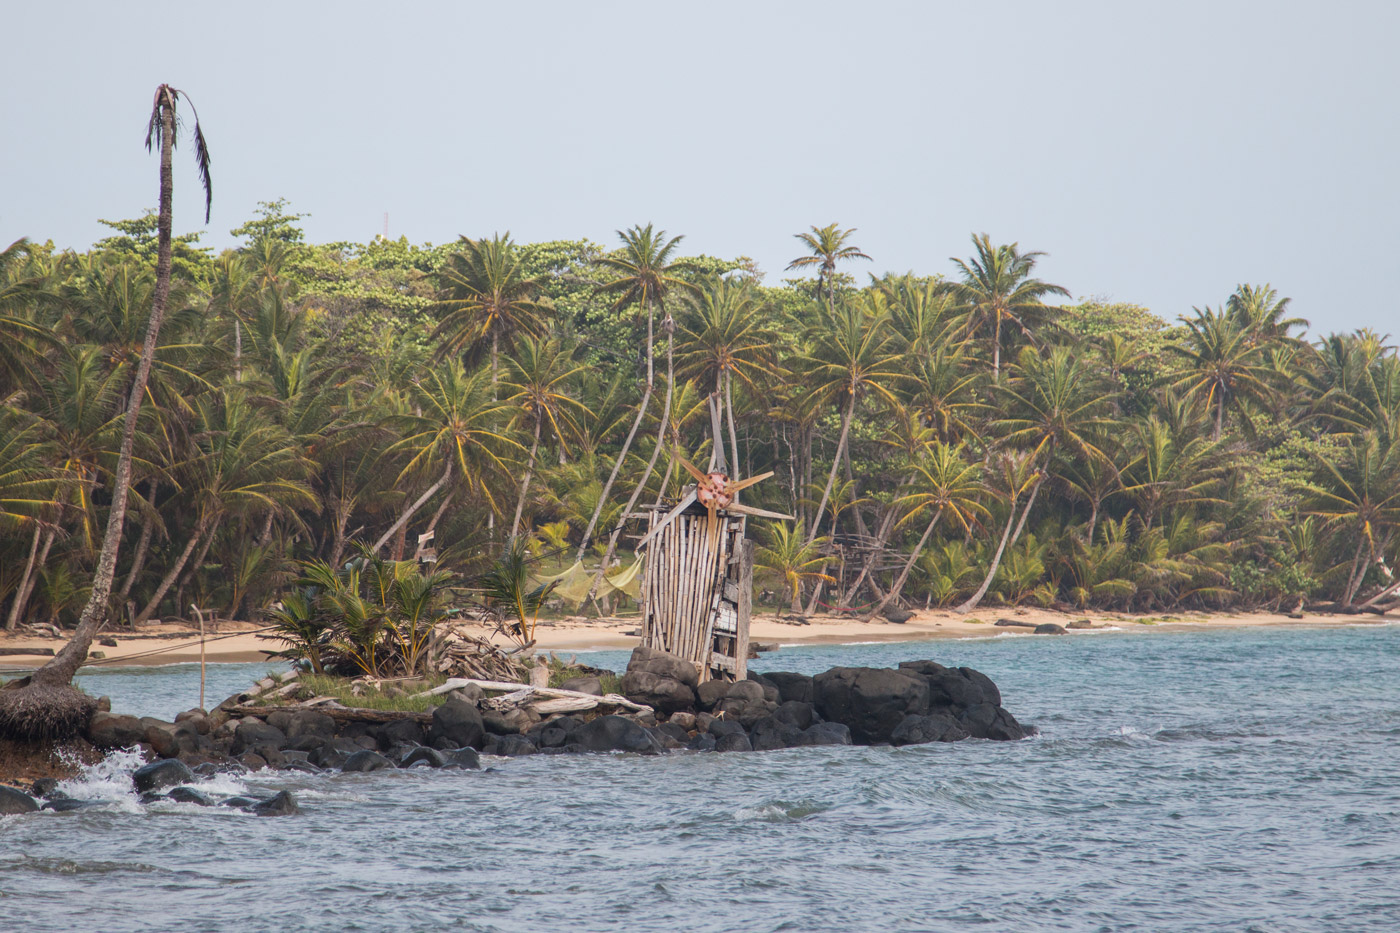 Homemade windmill generating electricity for a remote part of the island